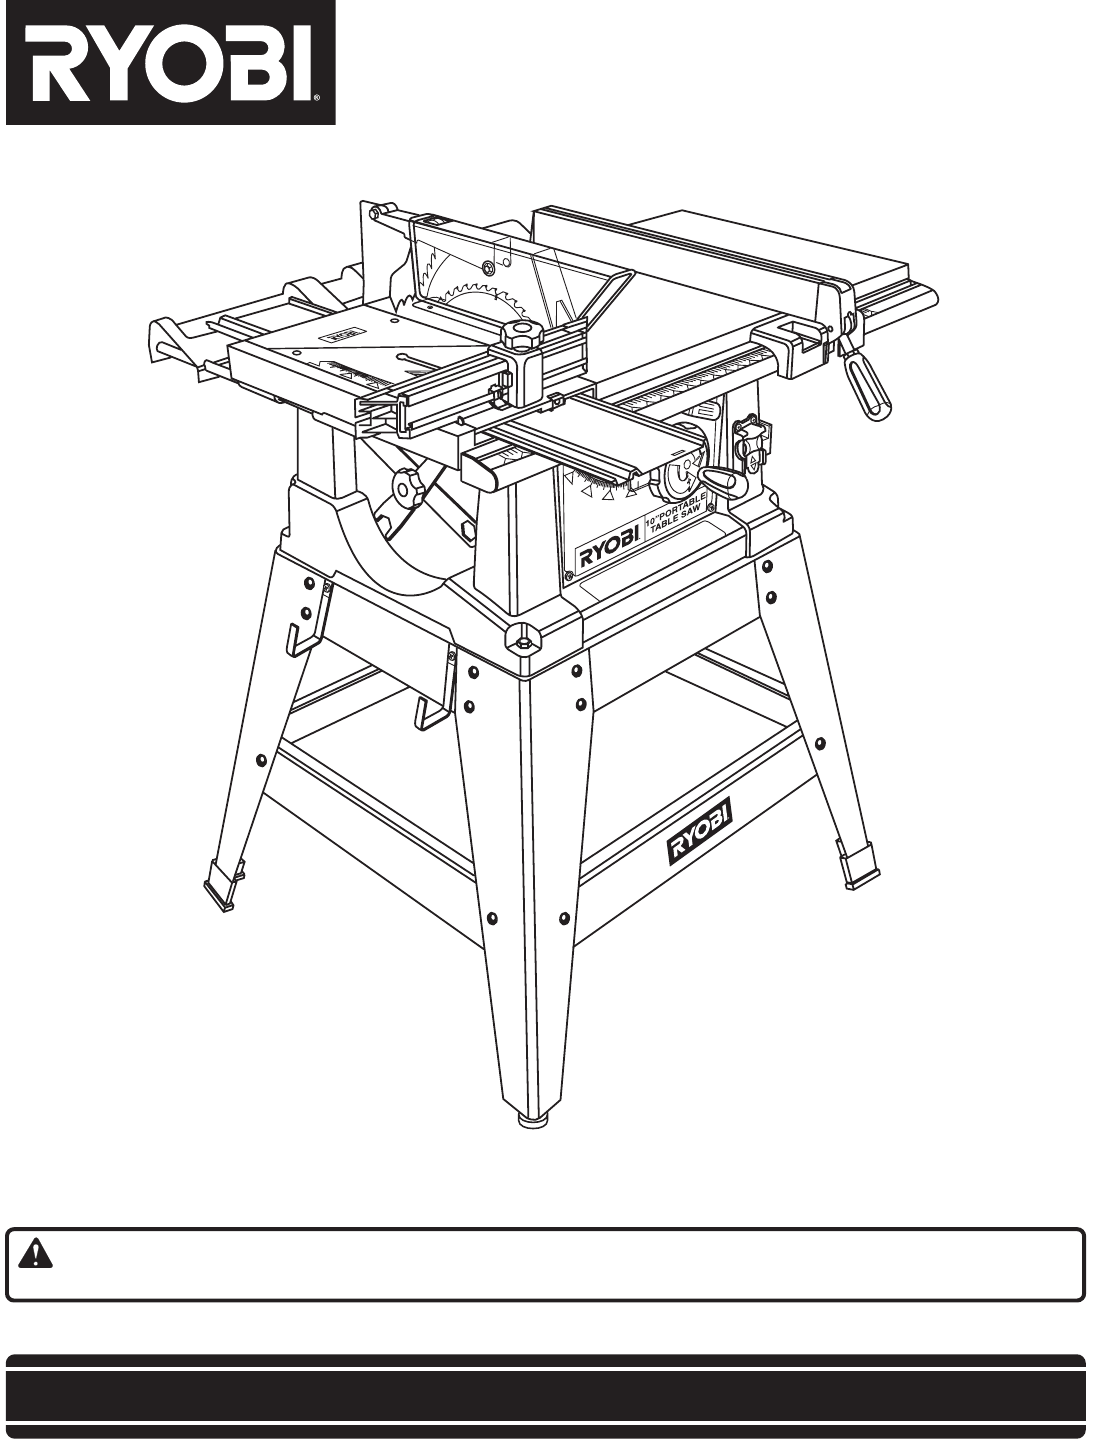 Ryobi Table Saw Manual Pictures To Pin On Pinterest Pinsdaddy